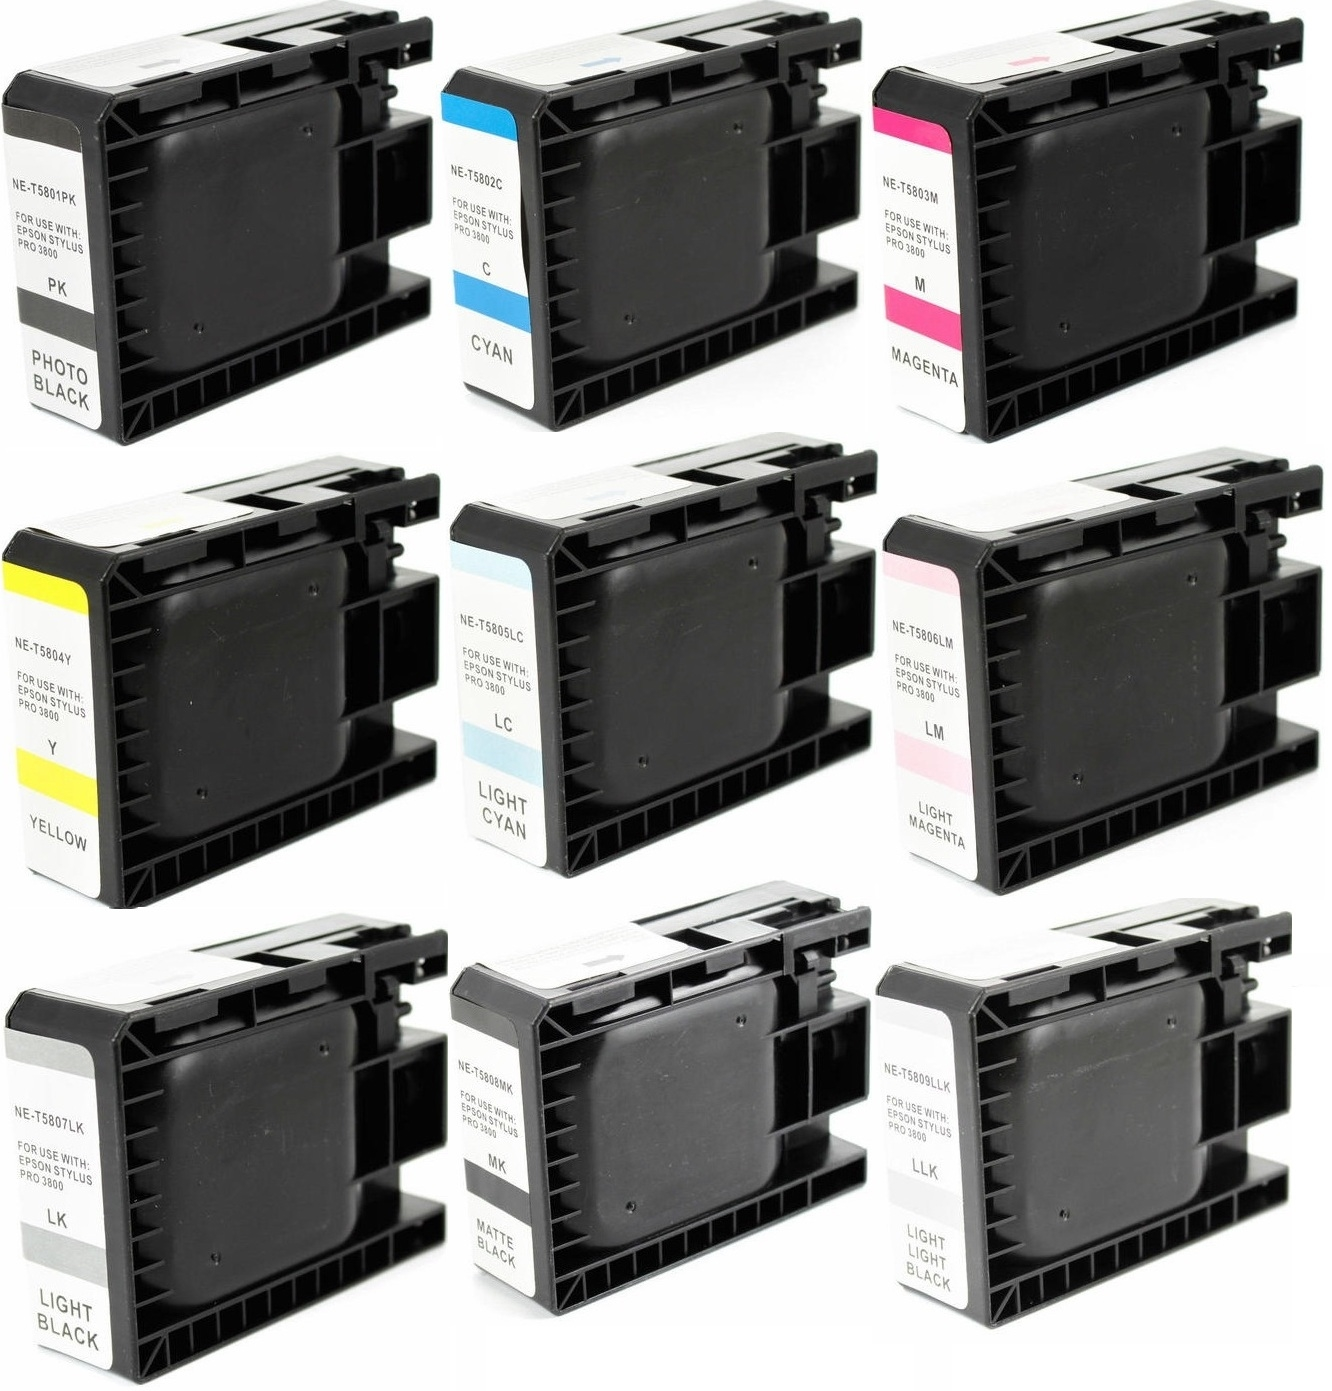 9 Ink Cartridges T580 Combo (T5801 - T5809) For Epson Stylus Pro 3800